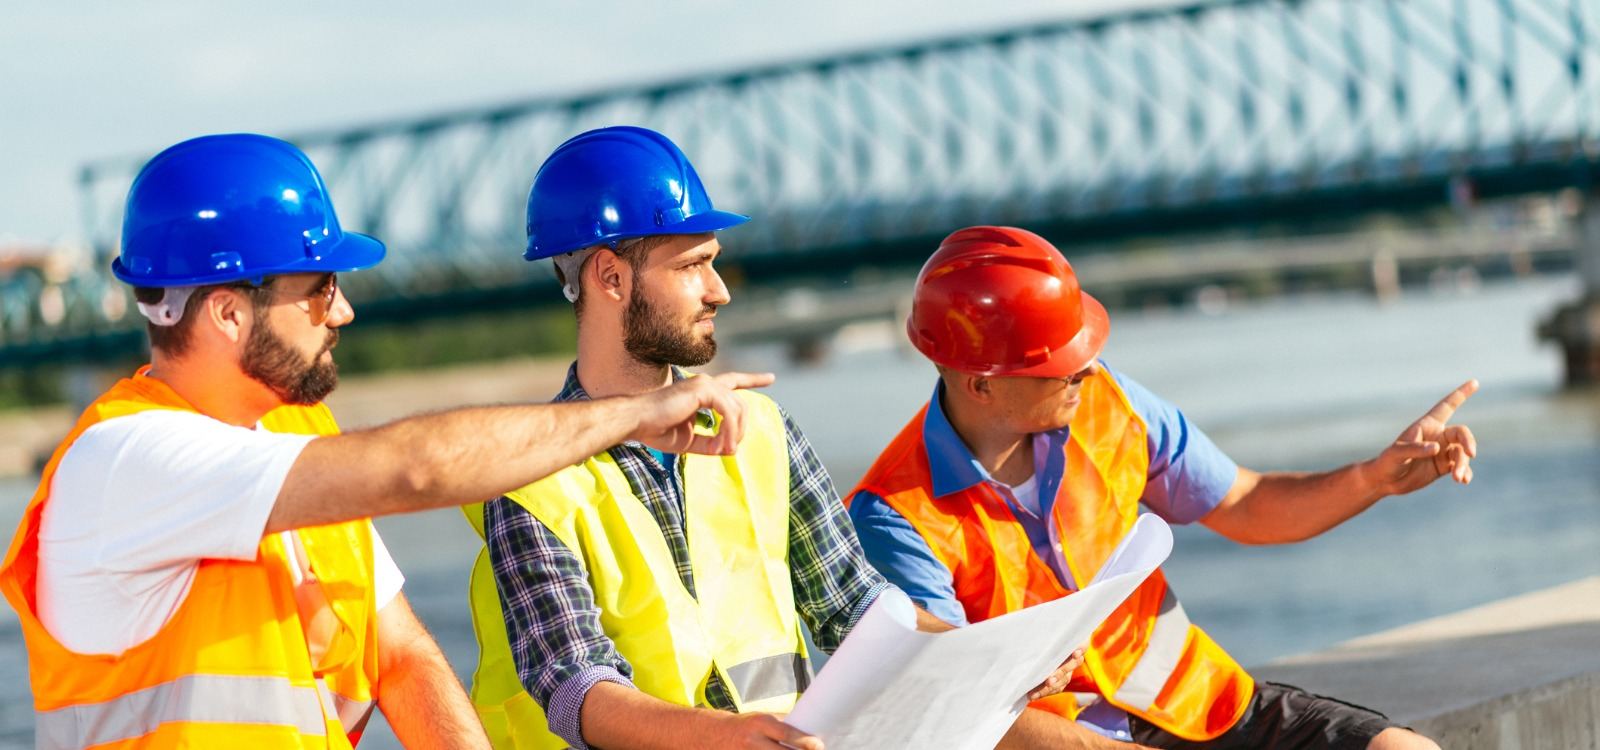 highway construction crew | payroll opportunities at large construction companies